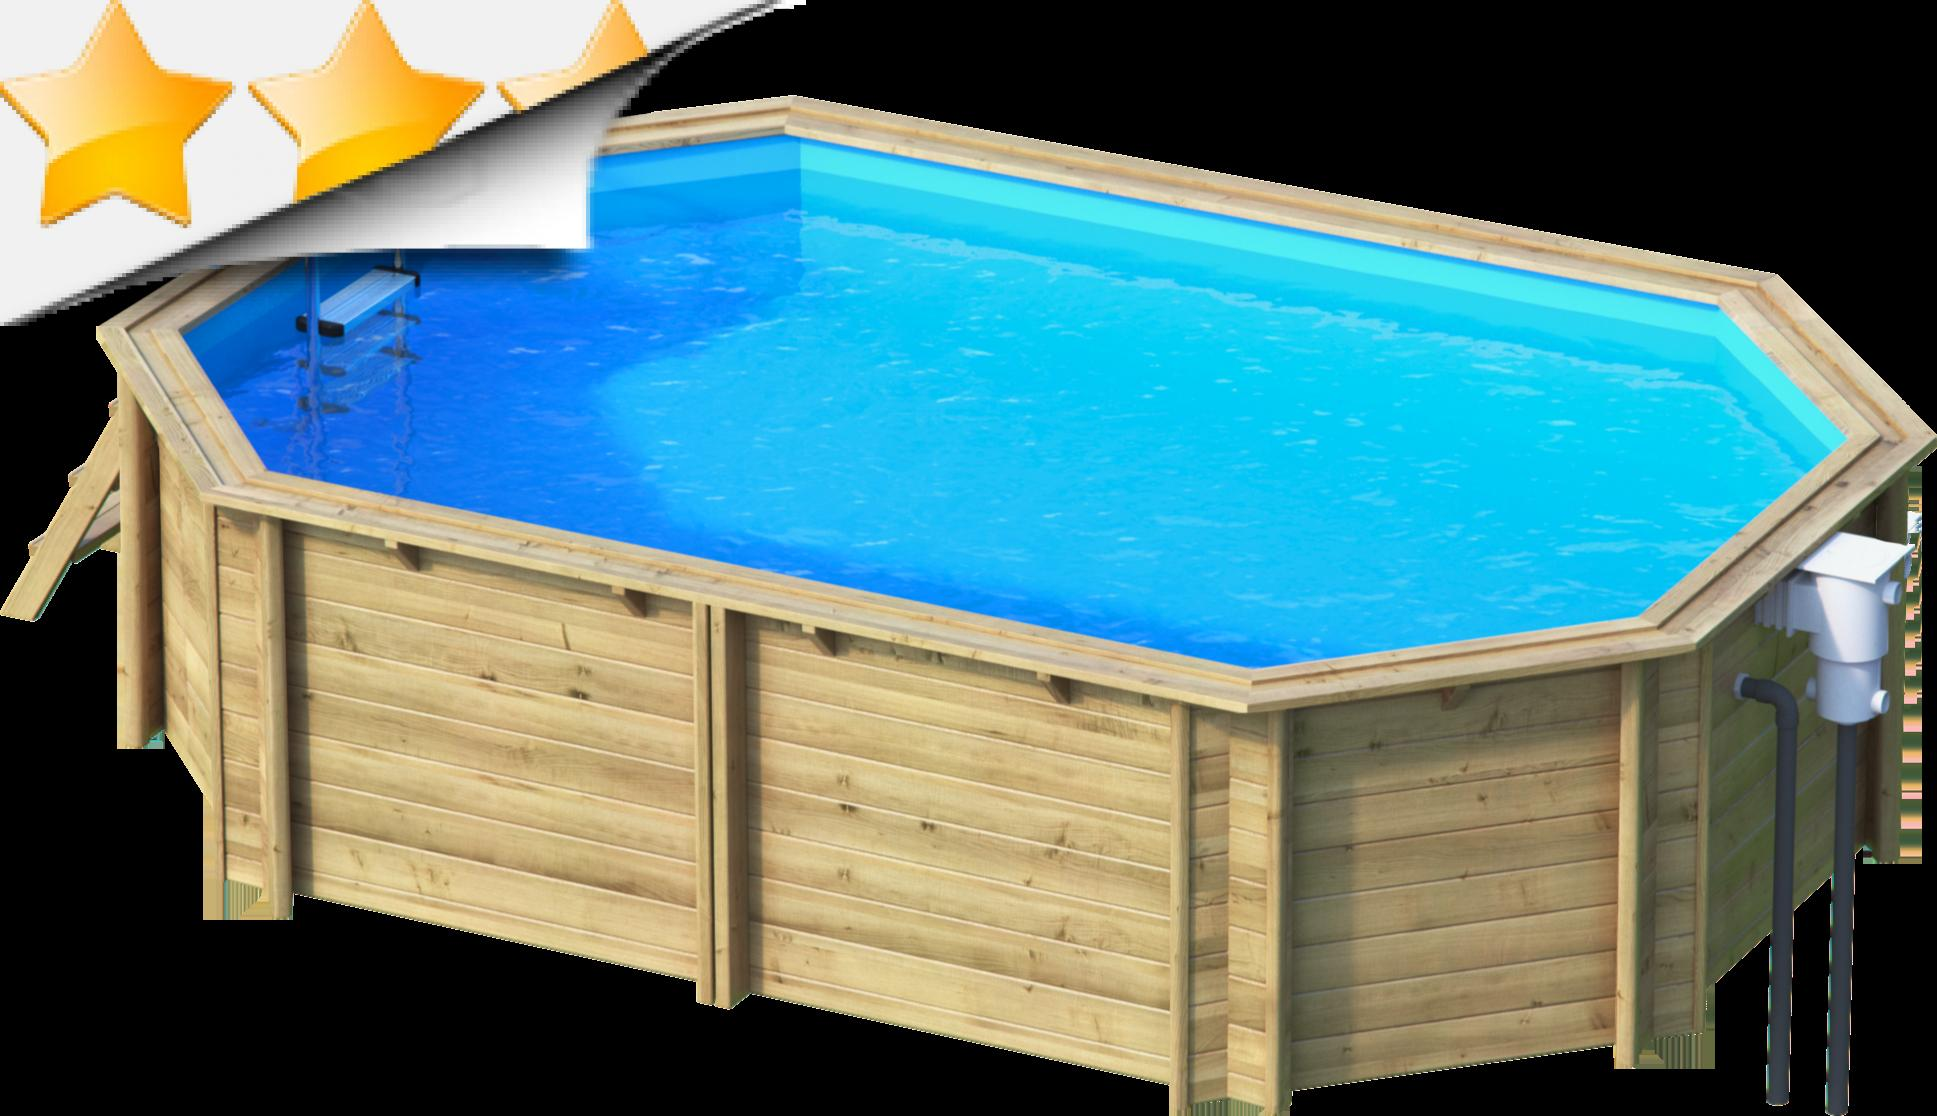 tropic octo 450 piscine octogonale